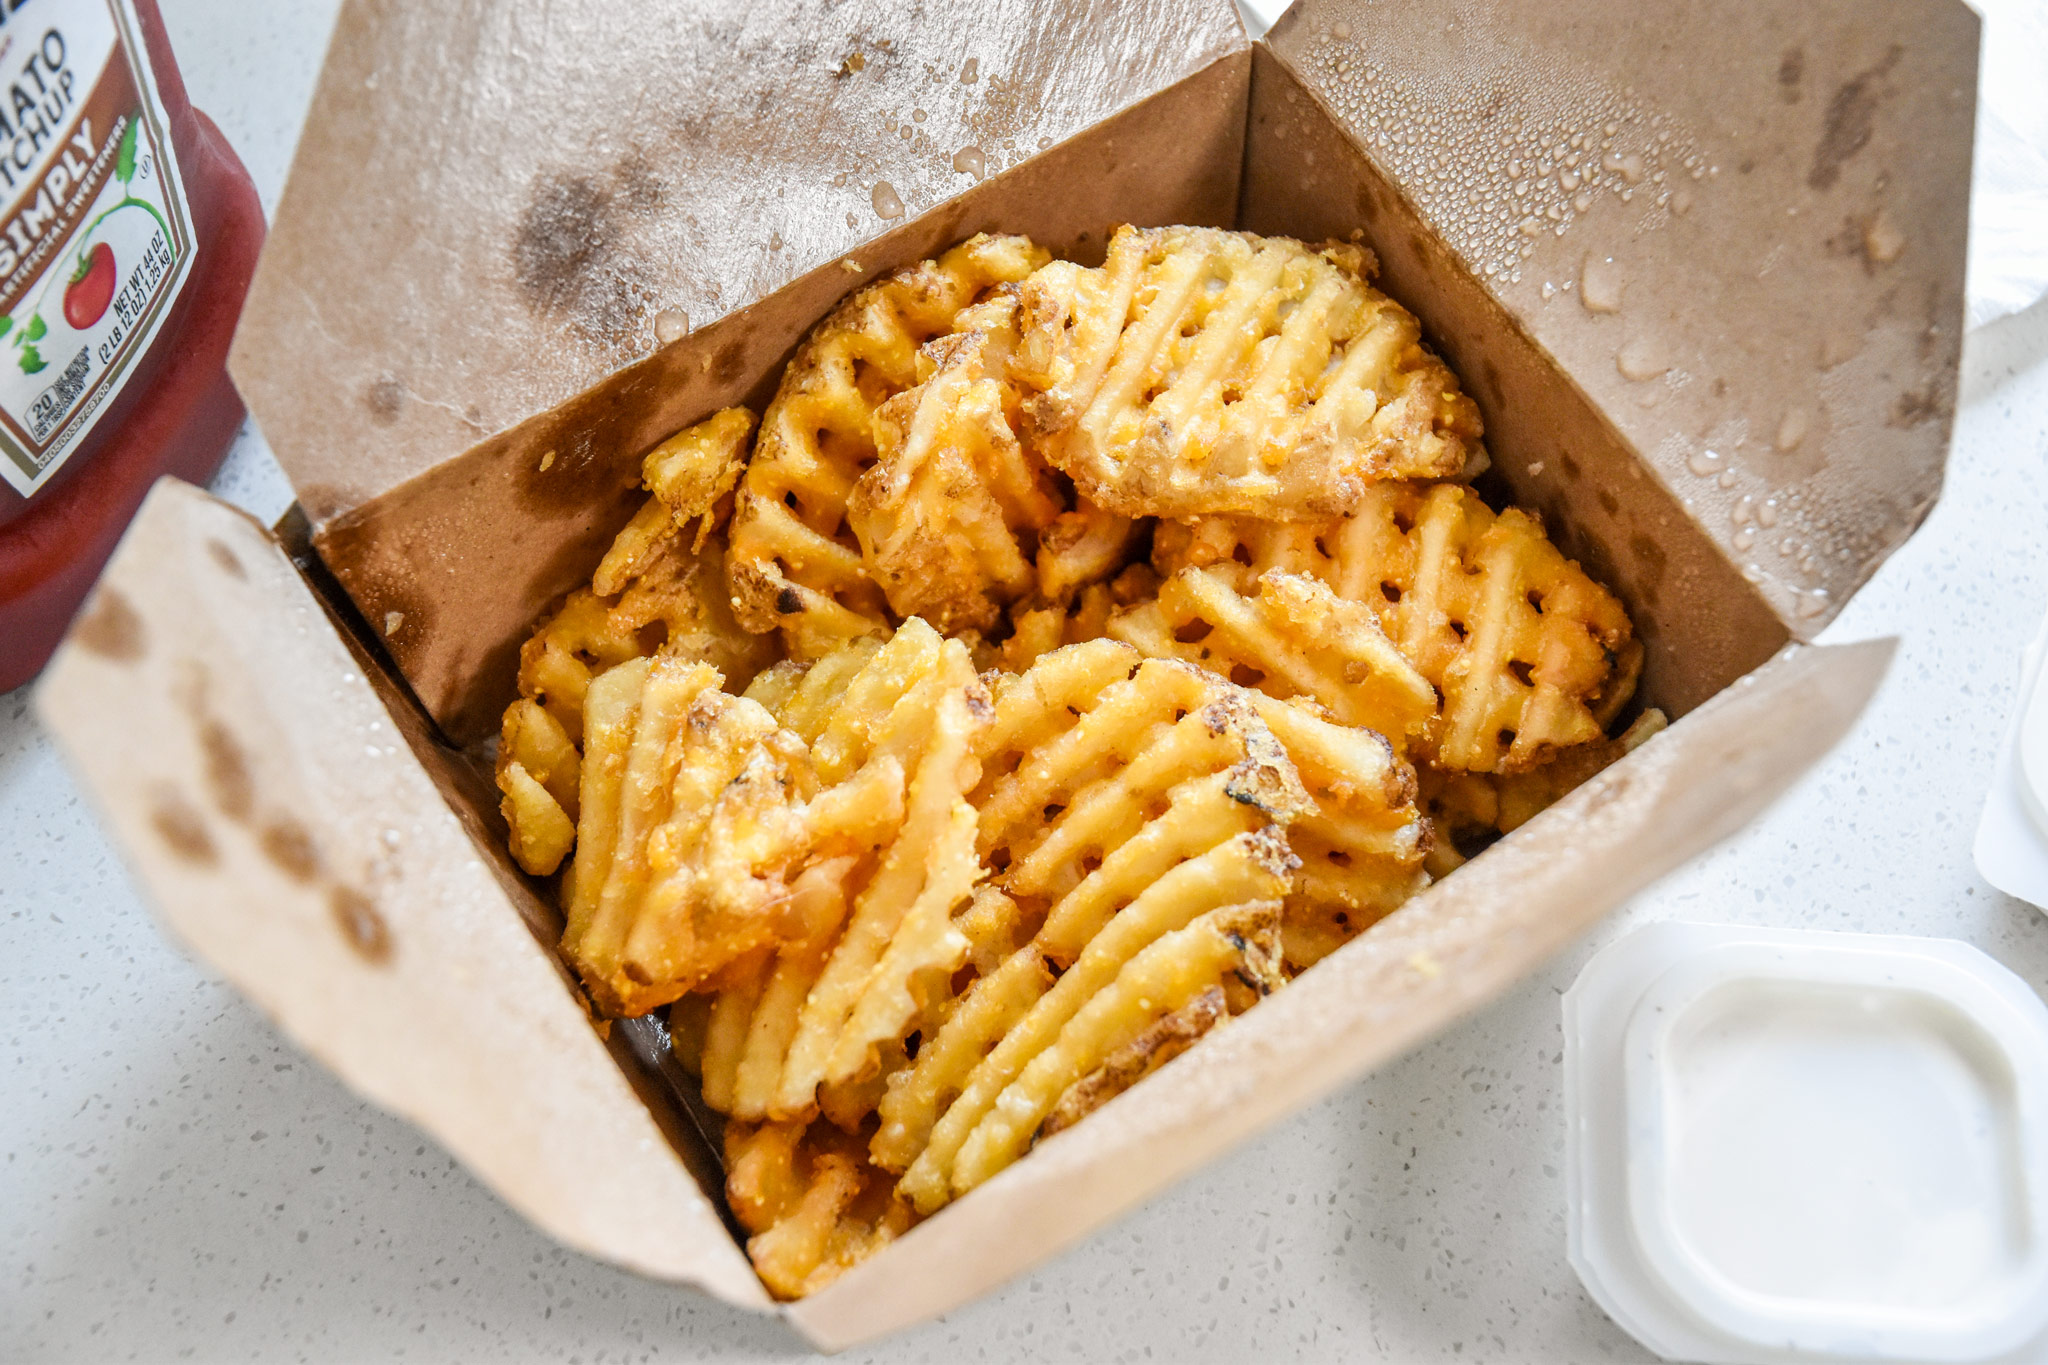 leftover fries in a take out container